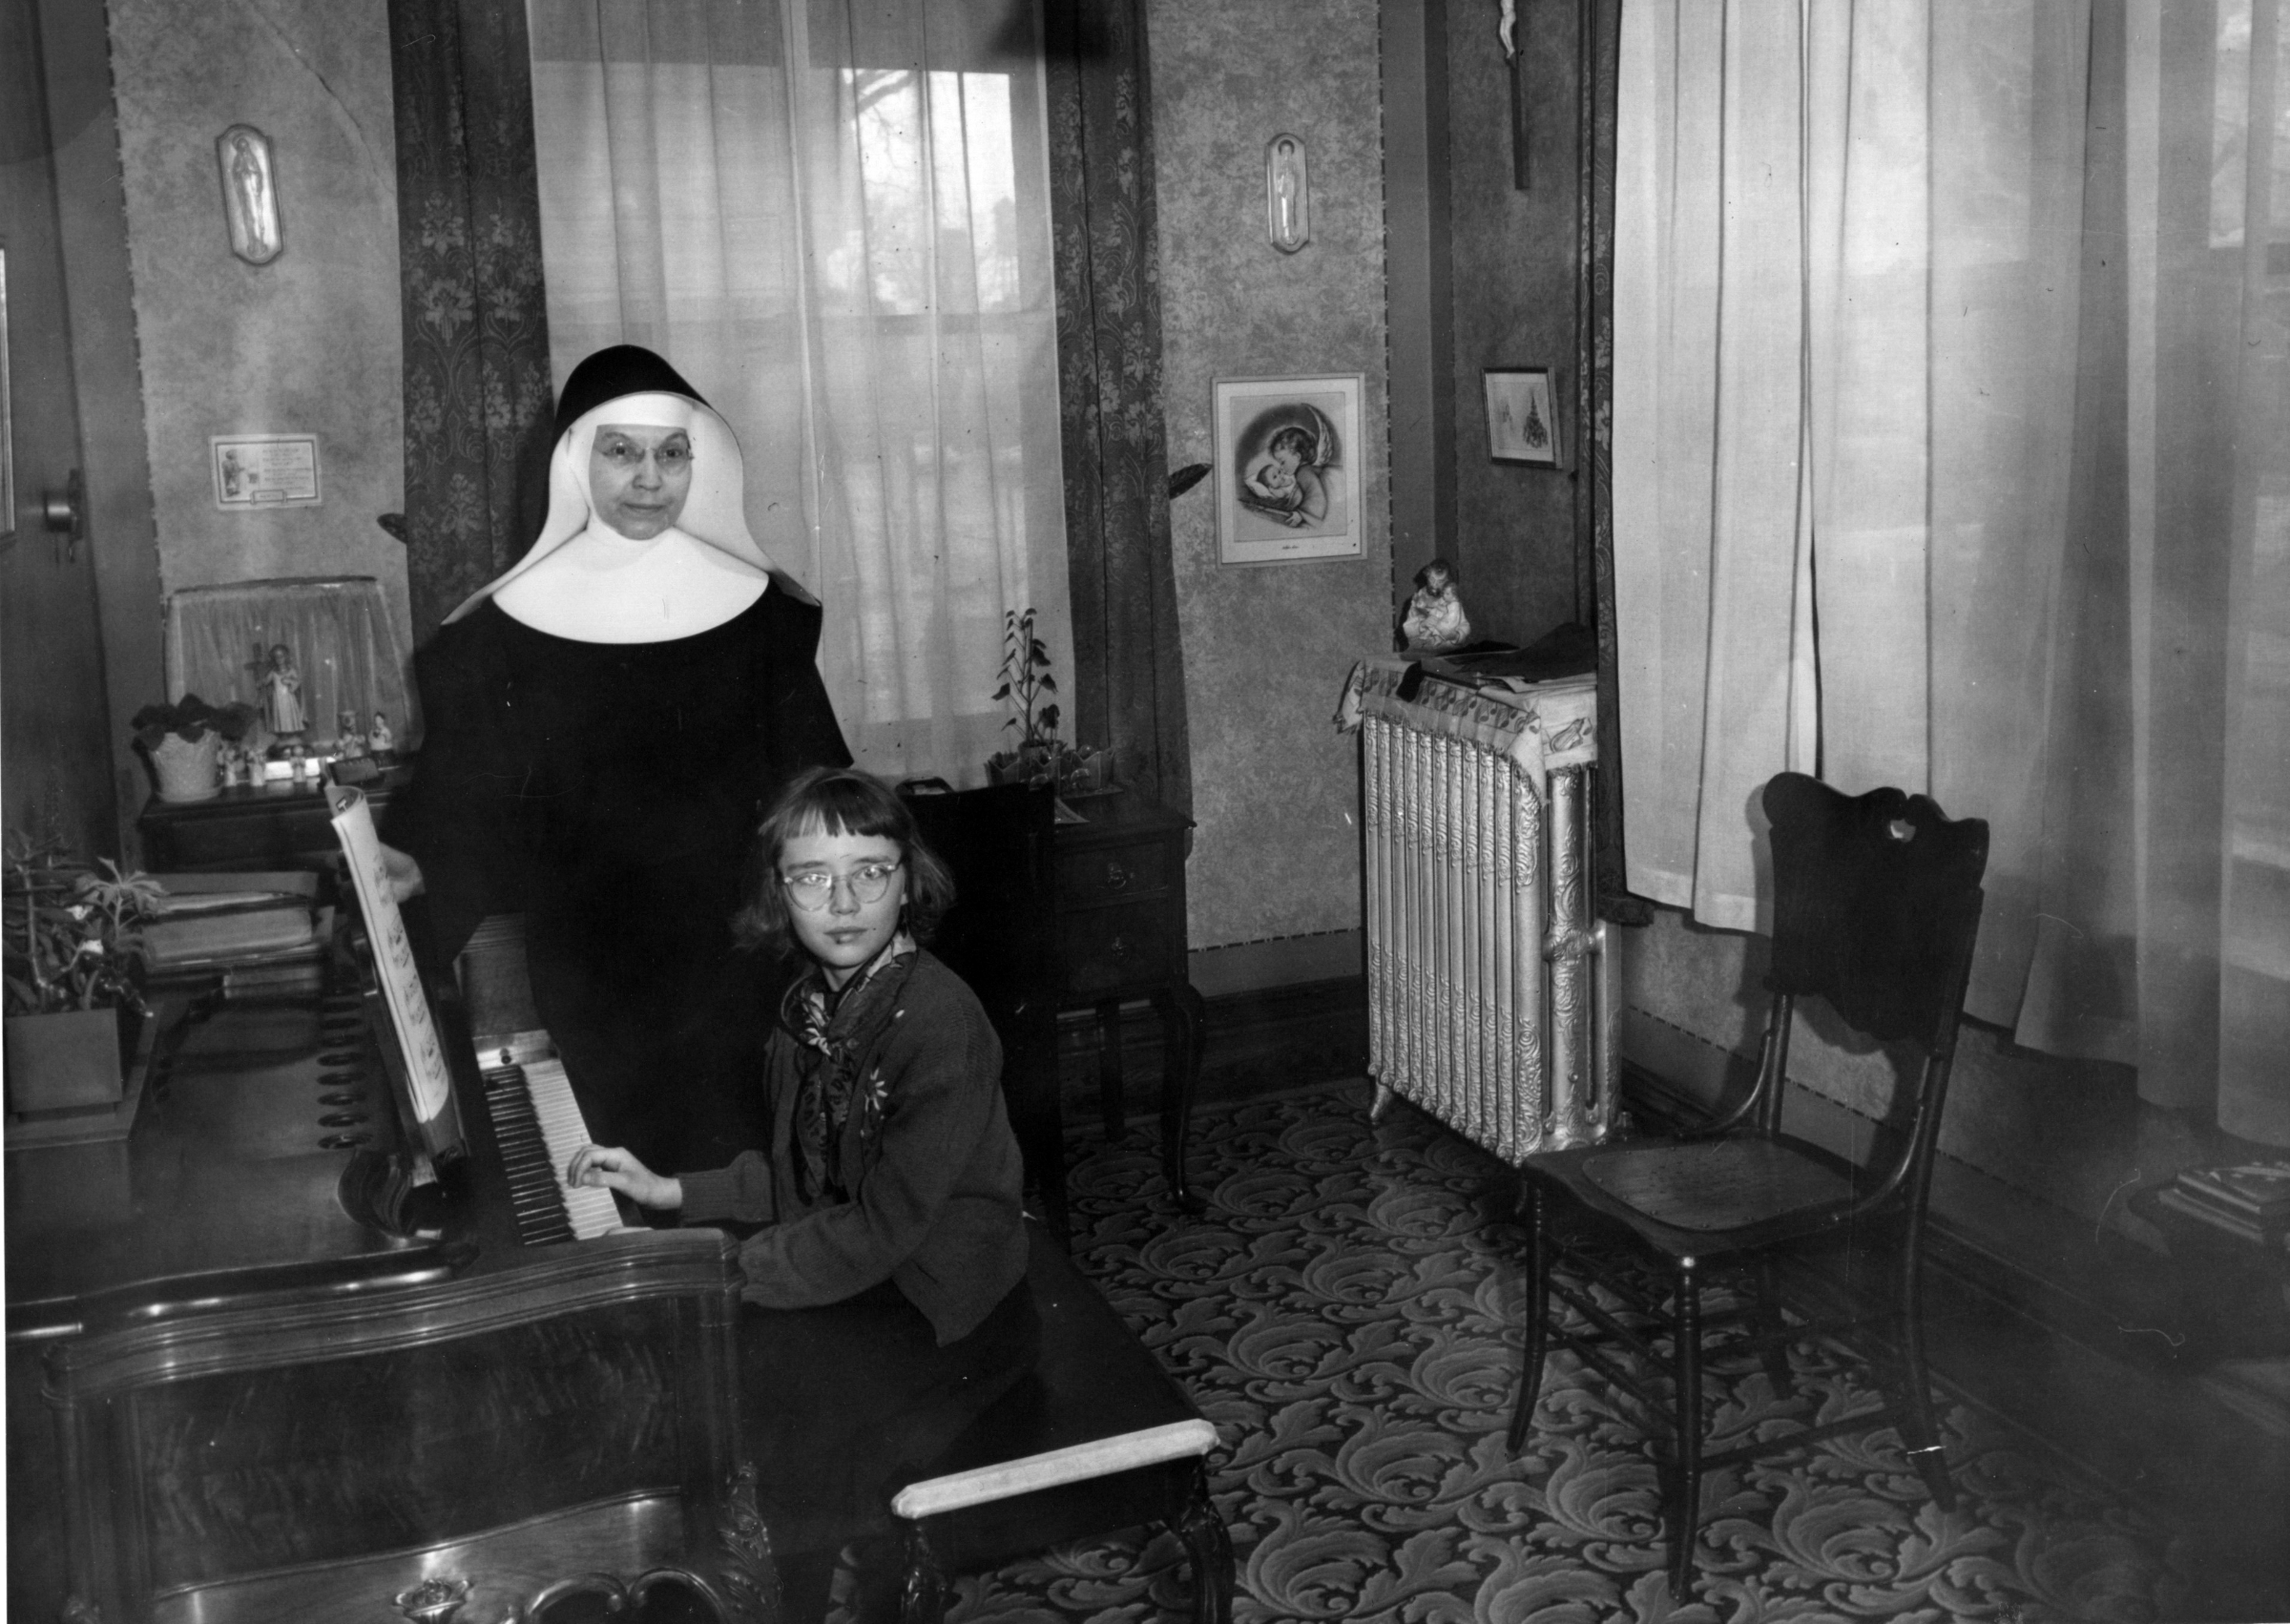 Sister Felicitas Dreiling and a music pupil at St. Mary's convent, Fond du Lac, c. 1950.